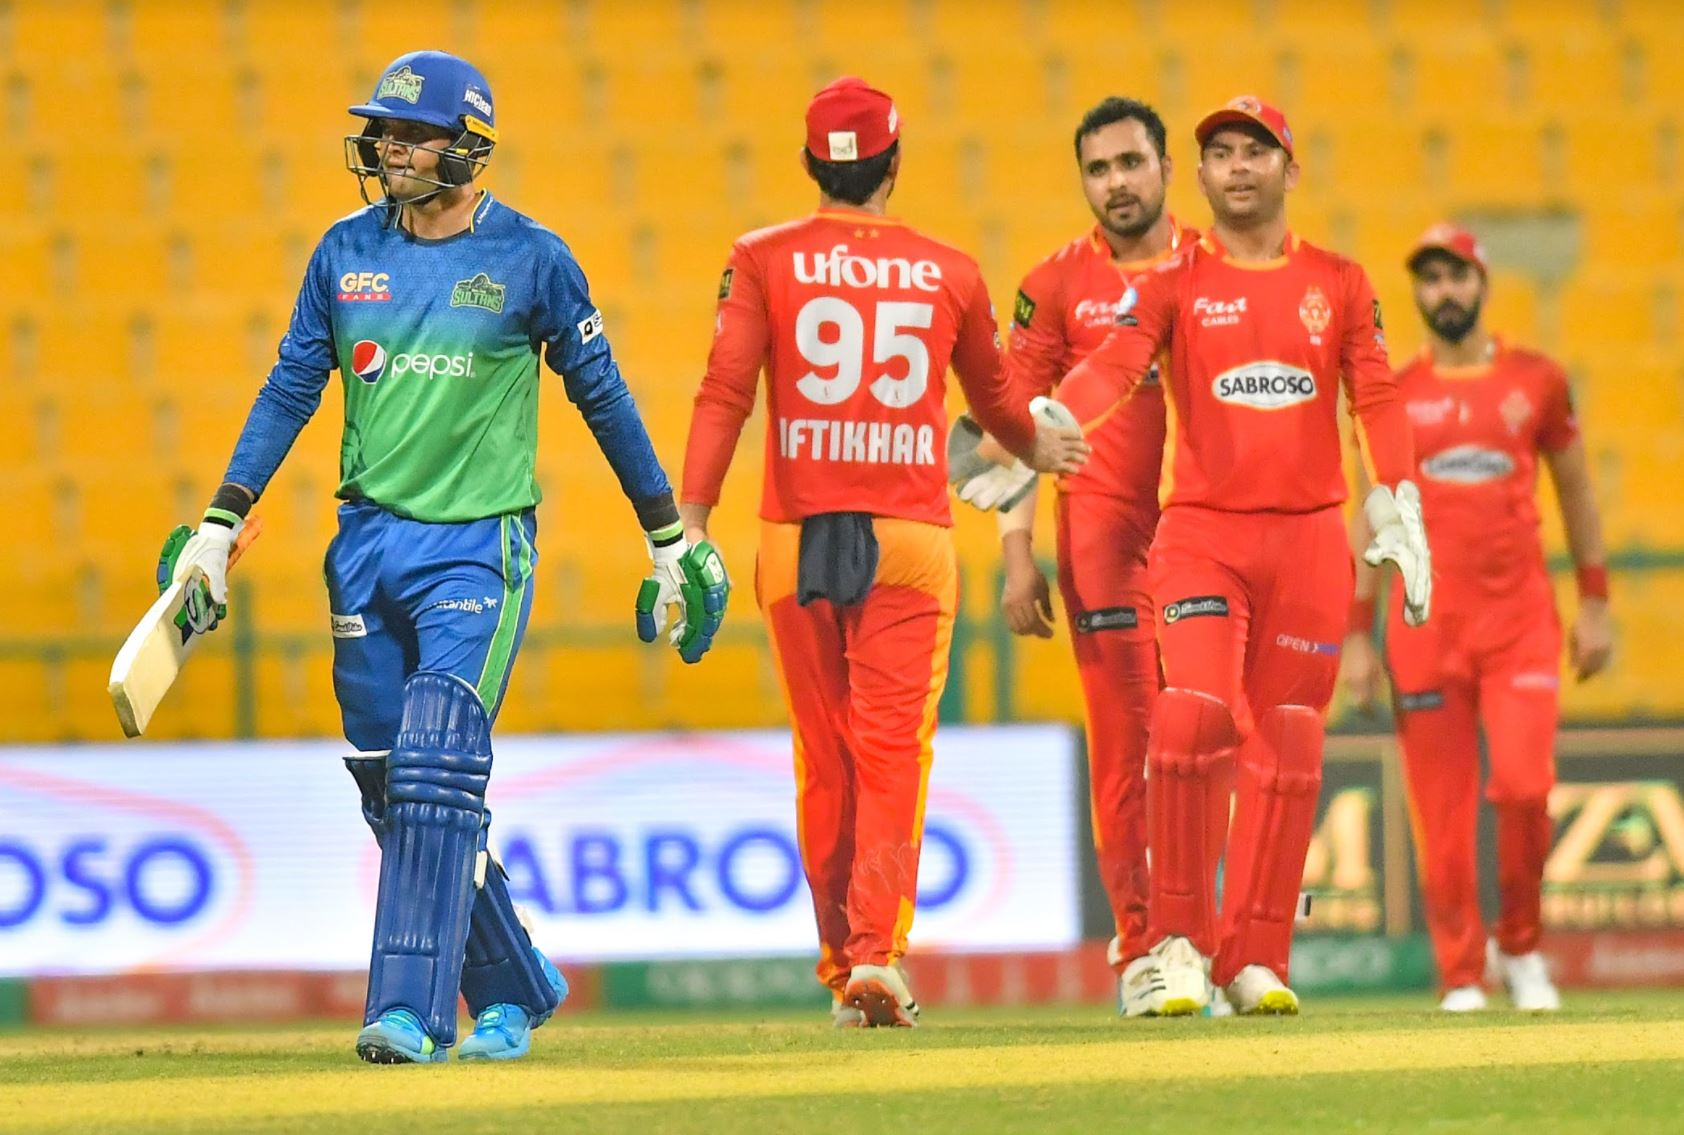 Islamabad United fight back brilliantly to restrict Multan Sultans to 149